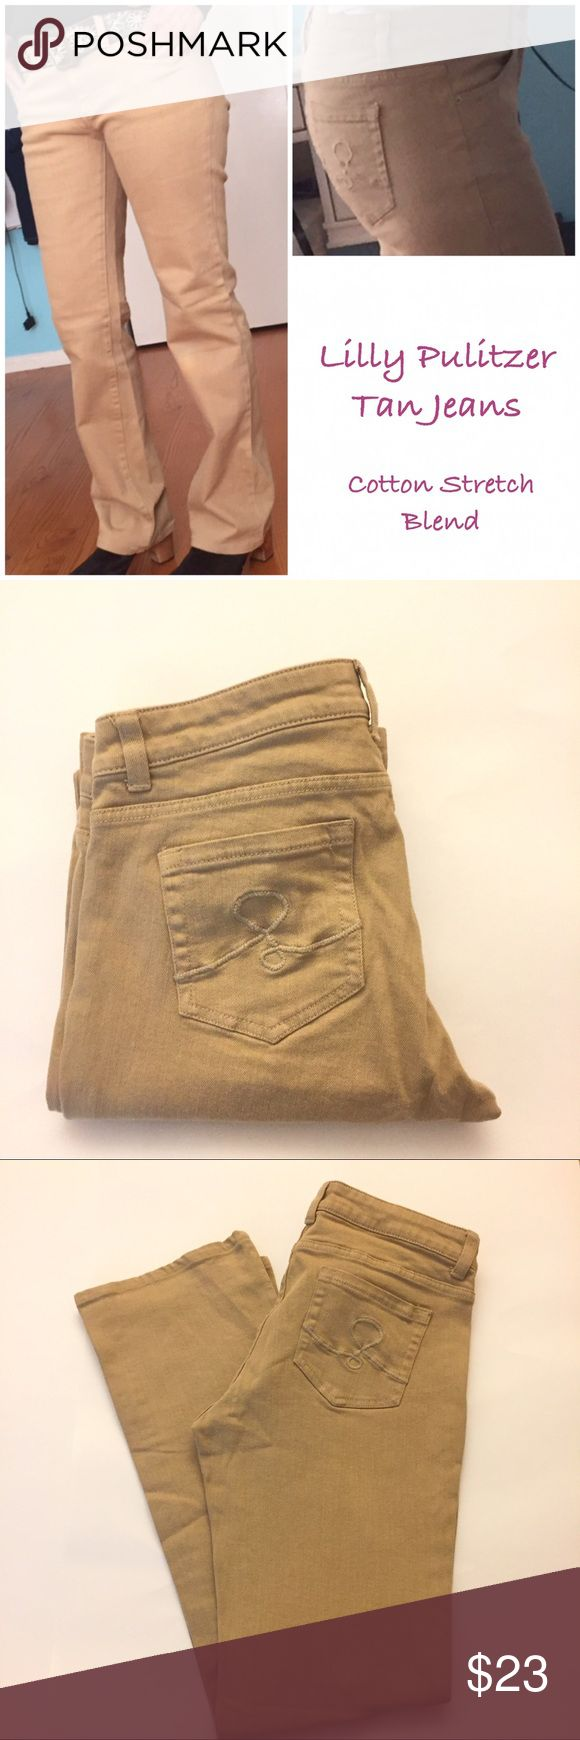 "Lilly Pulitzer TAN Jeans Marked size 8, Palm beach fit, waist 33"", inseam 31"", front rise 9"", bottom leg opening 8"",fabric cotton stretch blend, in used condition but well maintained.    Accepting Reasonable Offers Lilly Pulitzer Jeans Straight Leg"